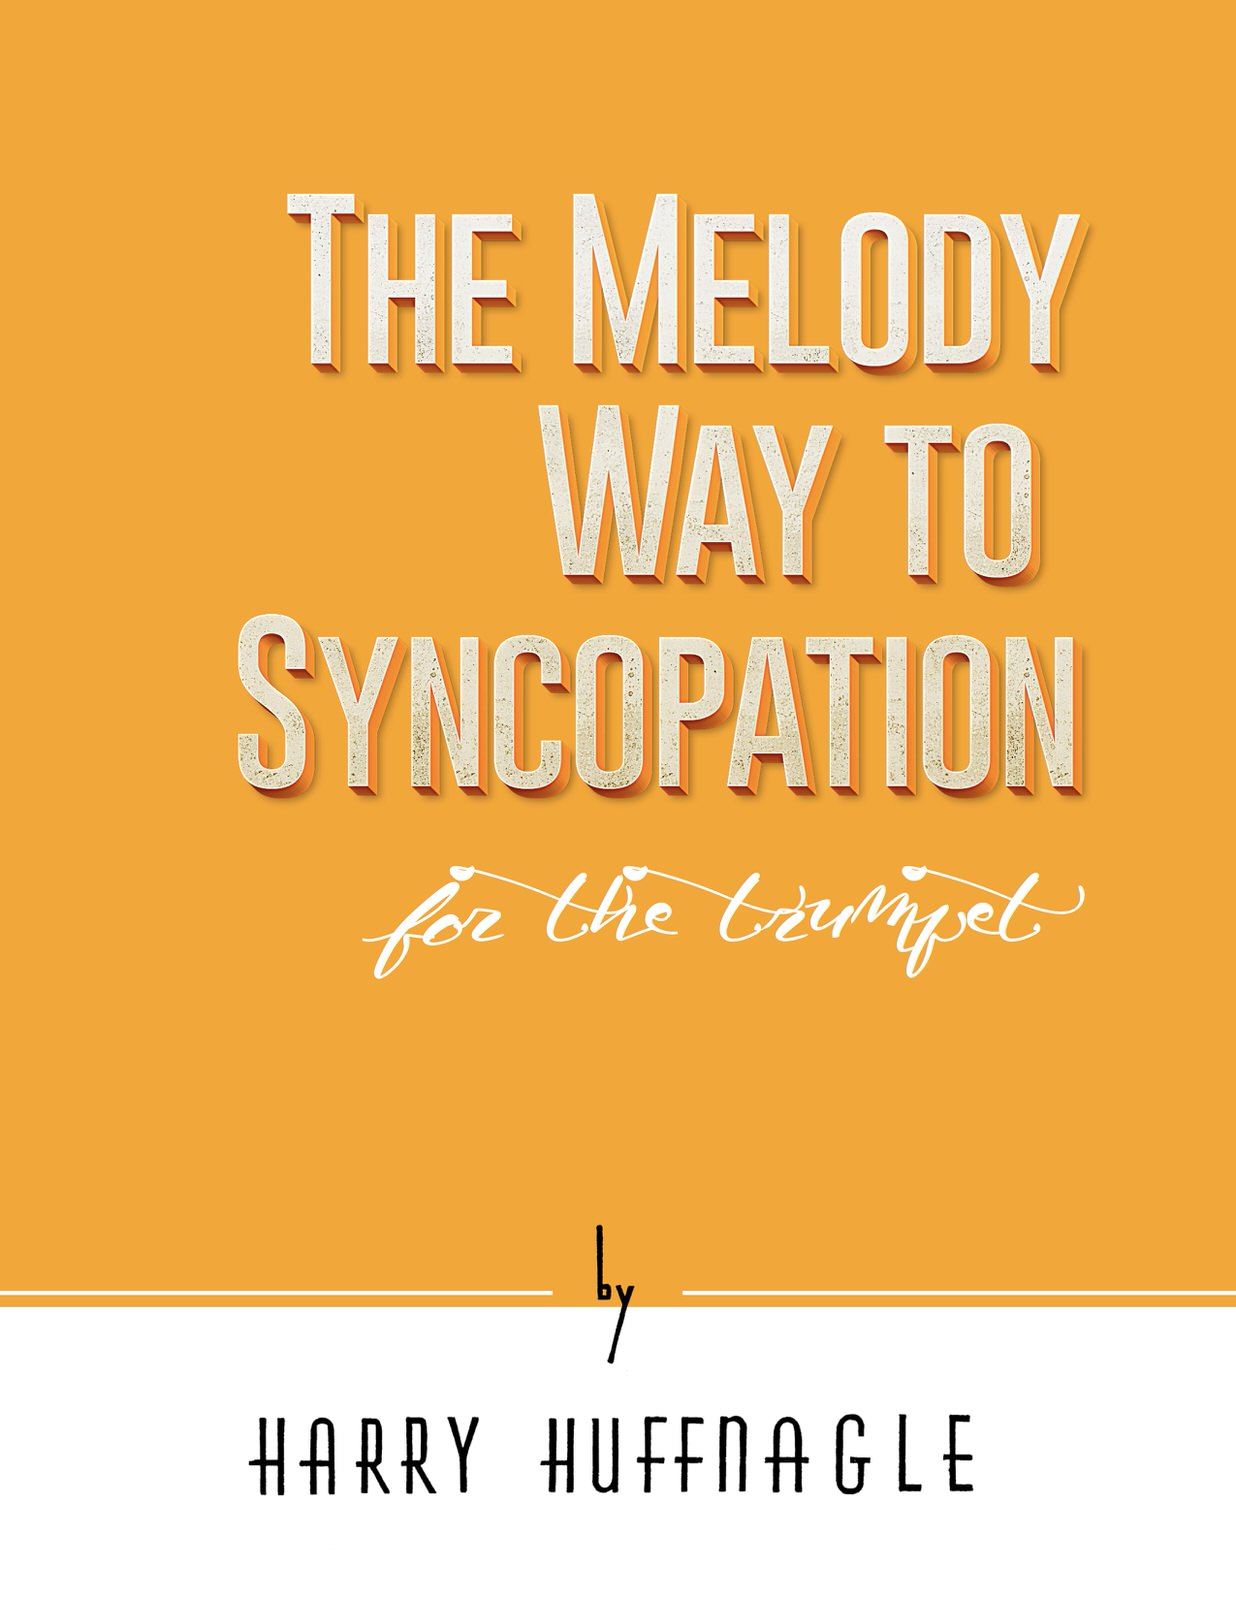 Huffnagle-Gornston, Melody Way to Syncopation-p01